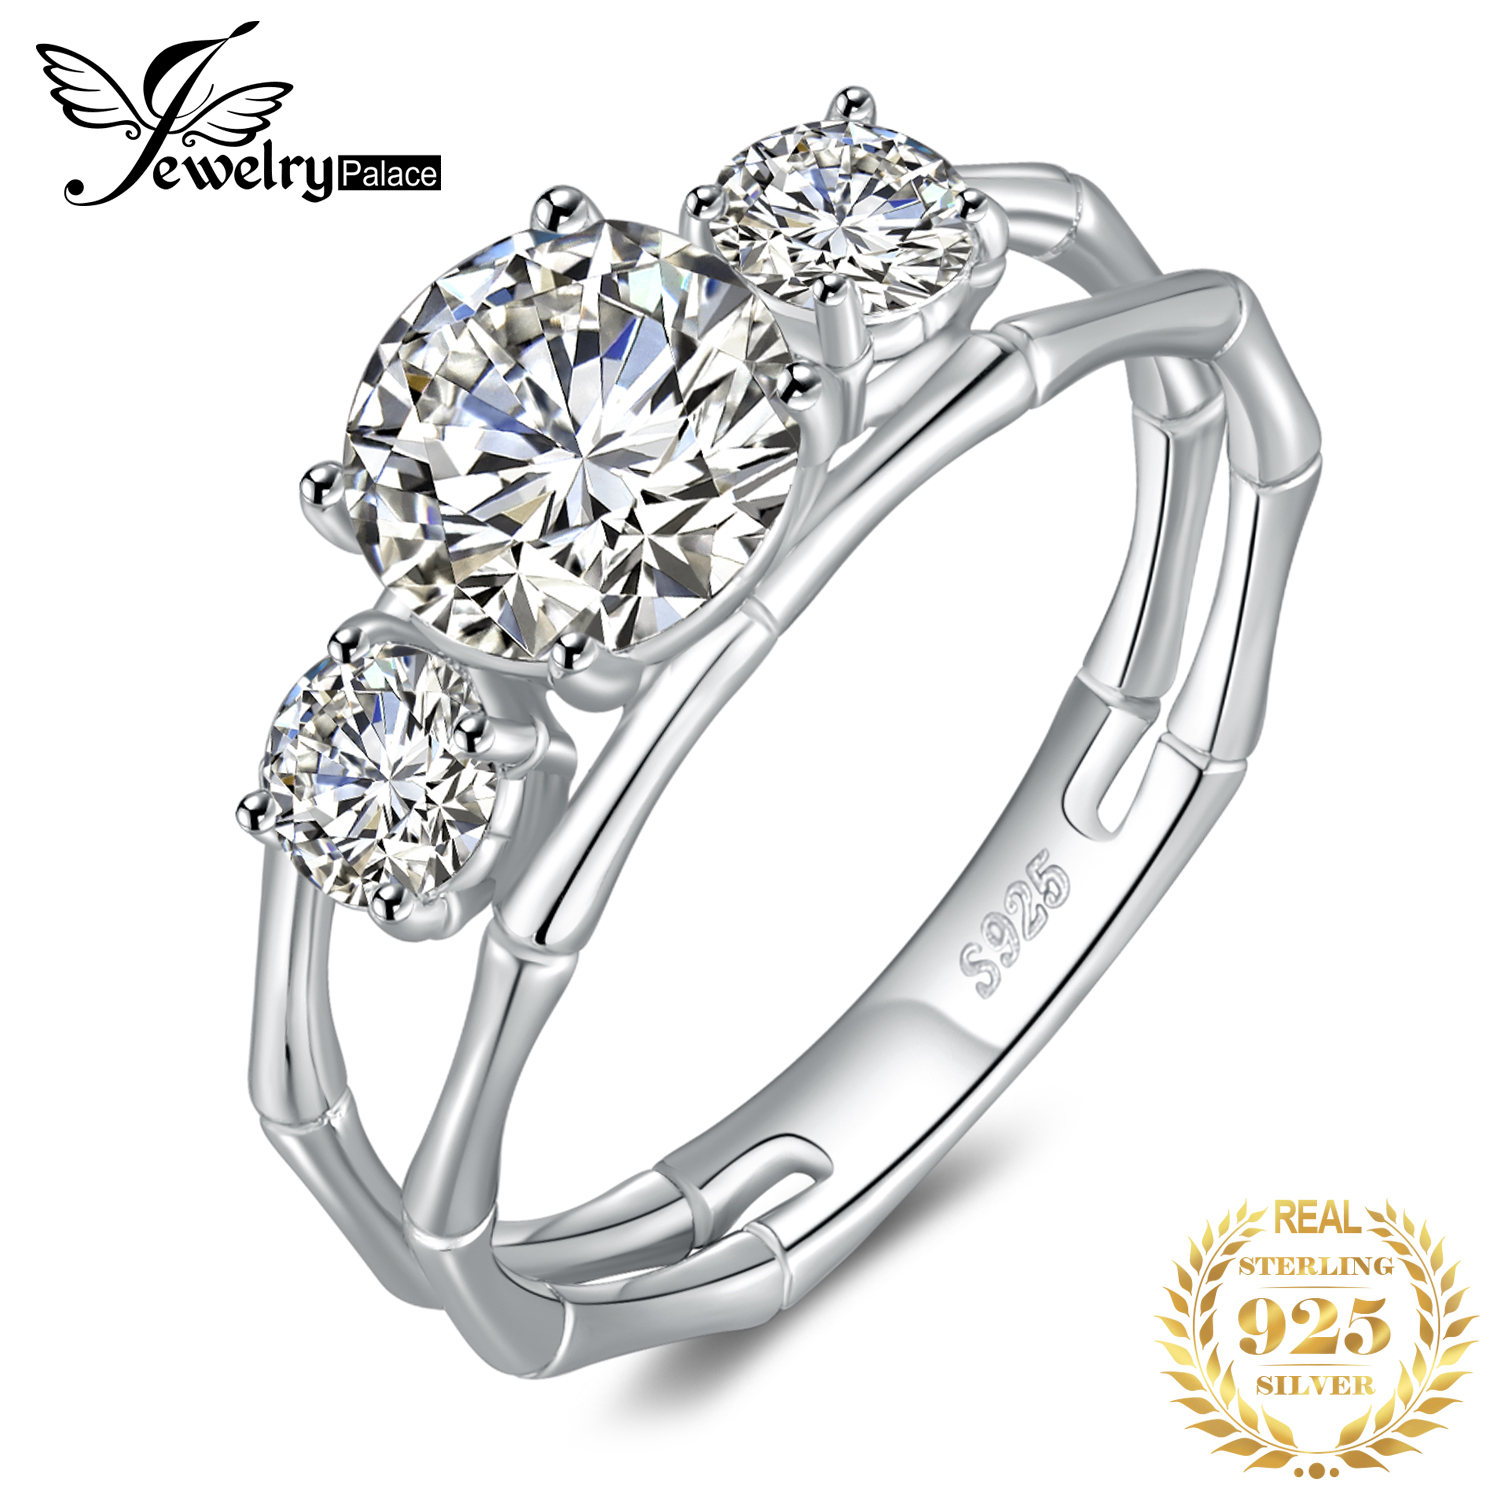 JewelryPalace 3 Stone Bamboo Bone Style Split Shank 2ct Cubic Zirconia Engagement Ring 925 Sterling Silver Rings For Women Gifts